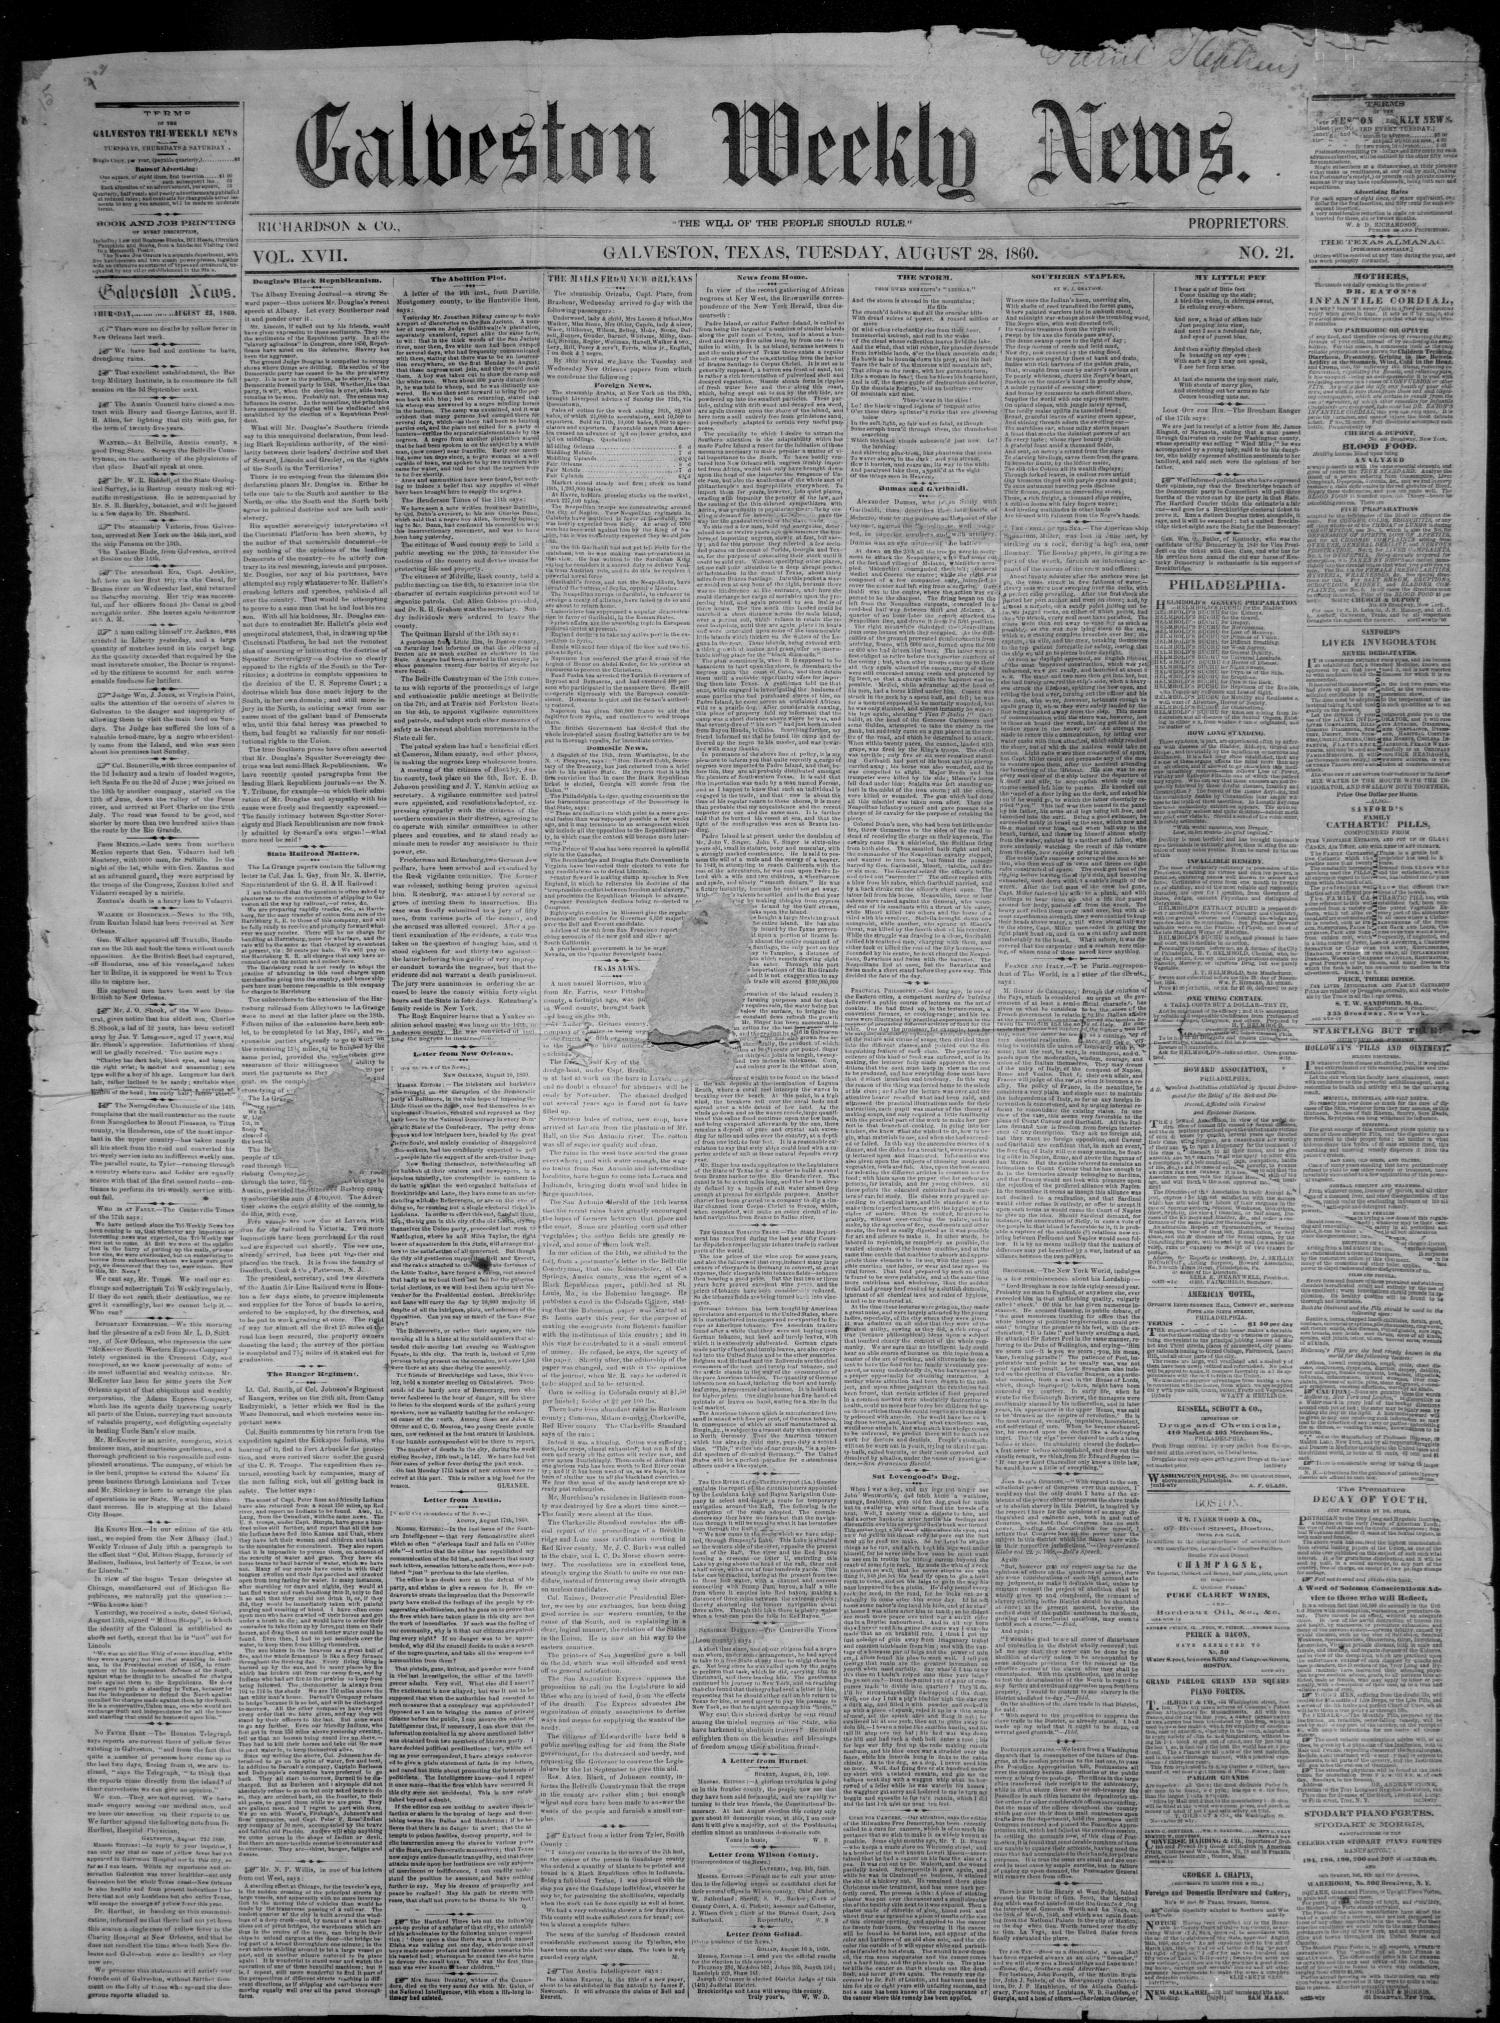 Galveston Weekly News (Galveston, Tex.), Vol. 17, No. 21, Ed. 1, Tuesday, August 28, 1860                                                                                                      [Sequence #]: 1 of 4